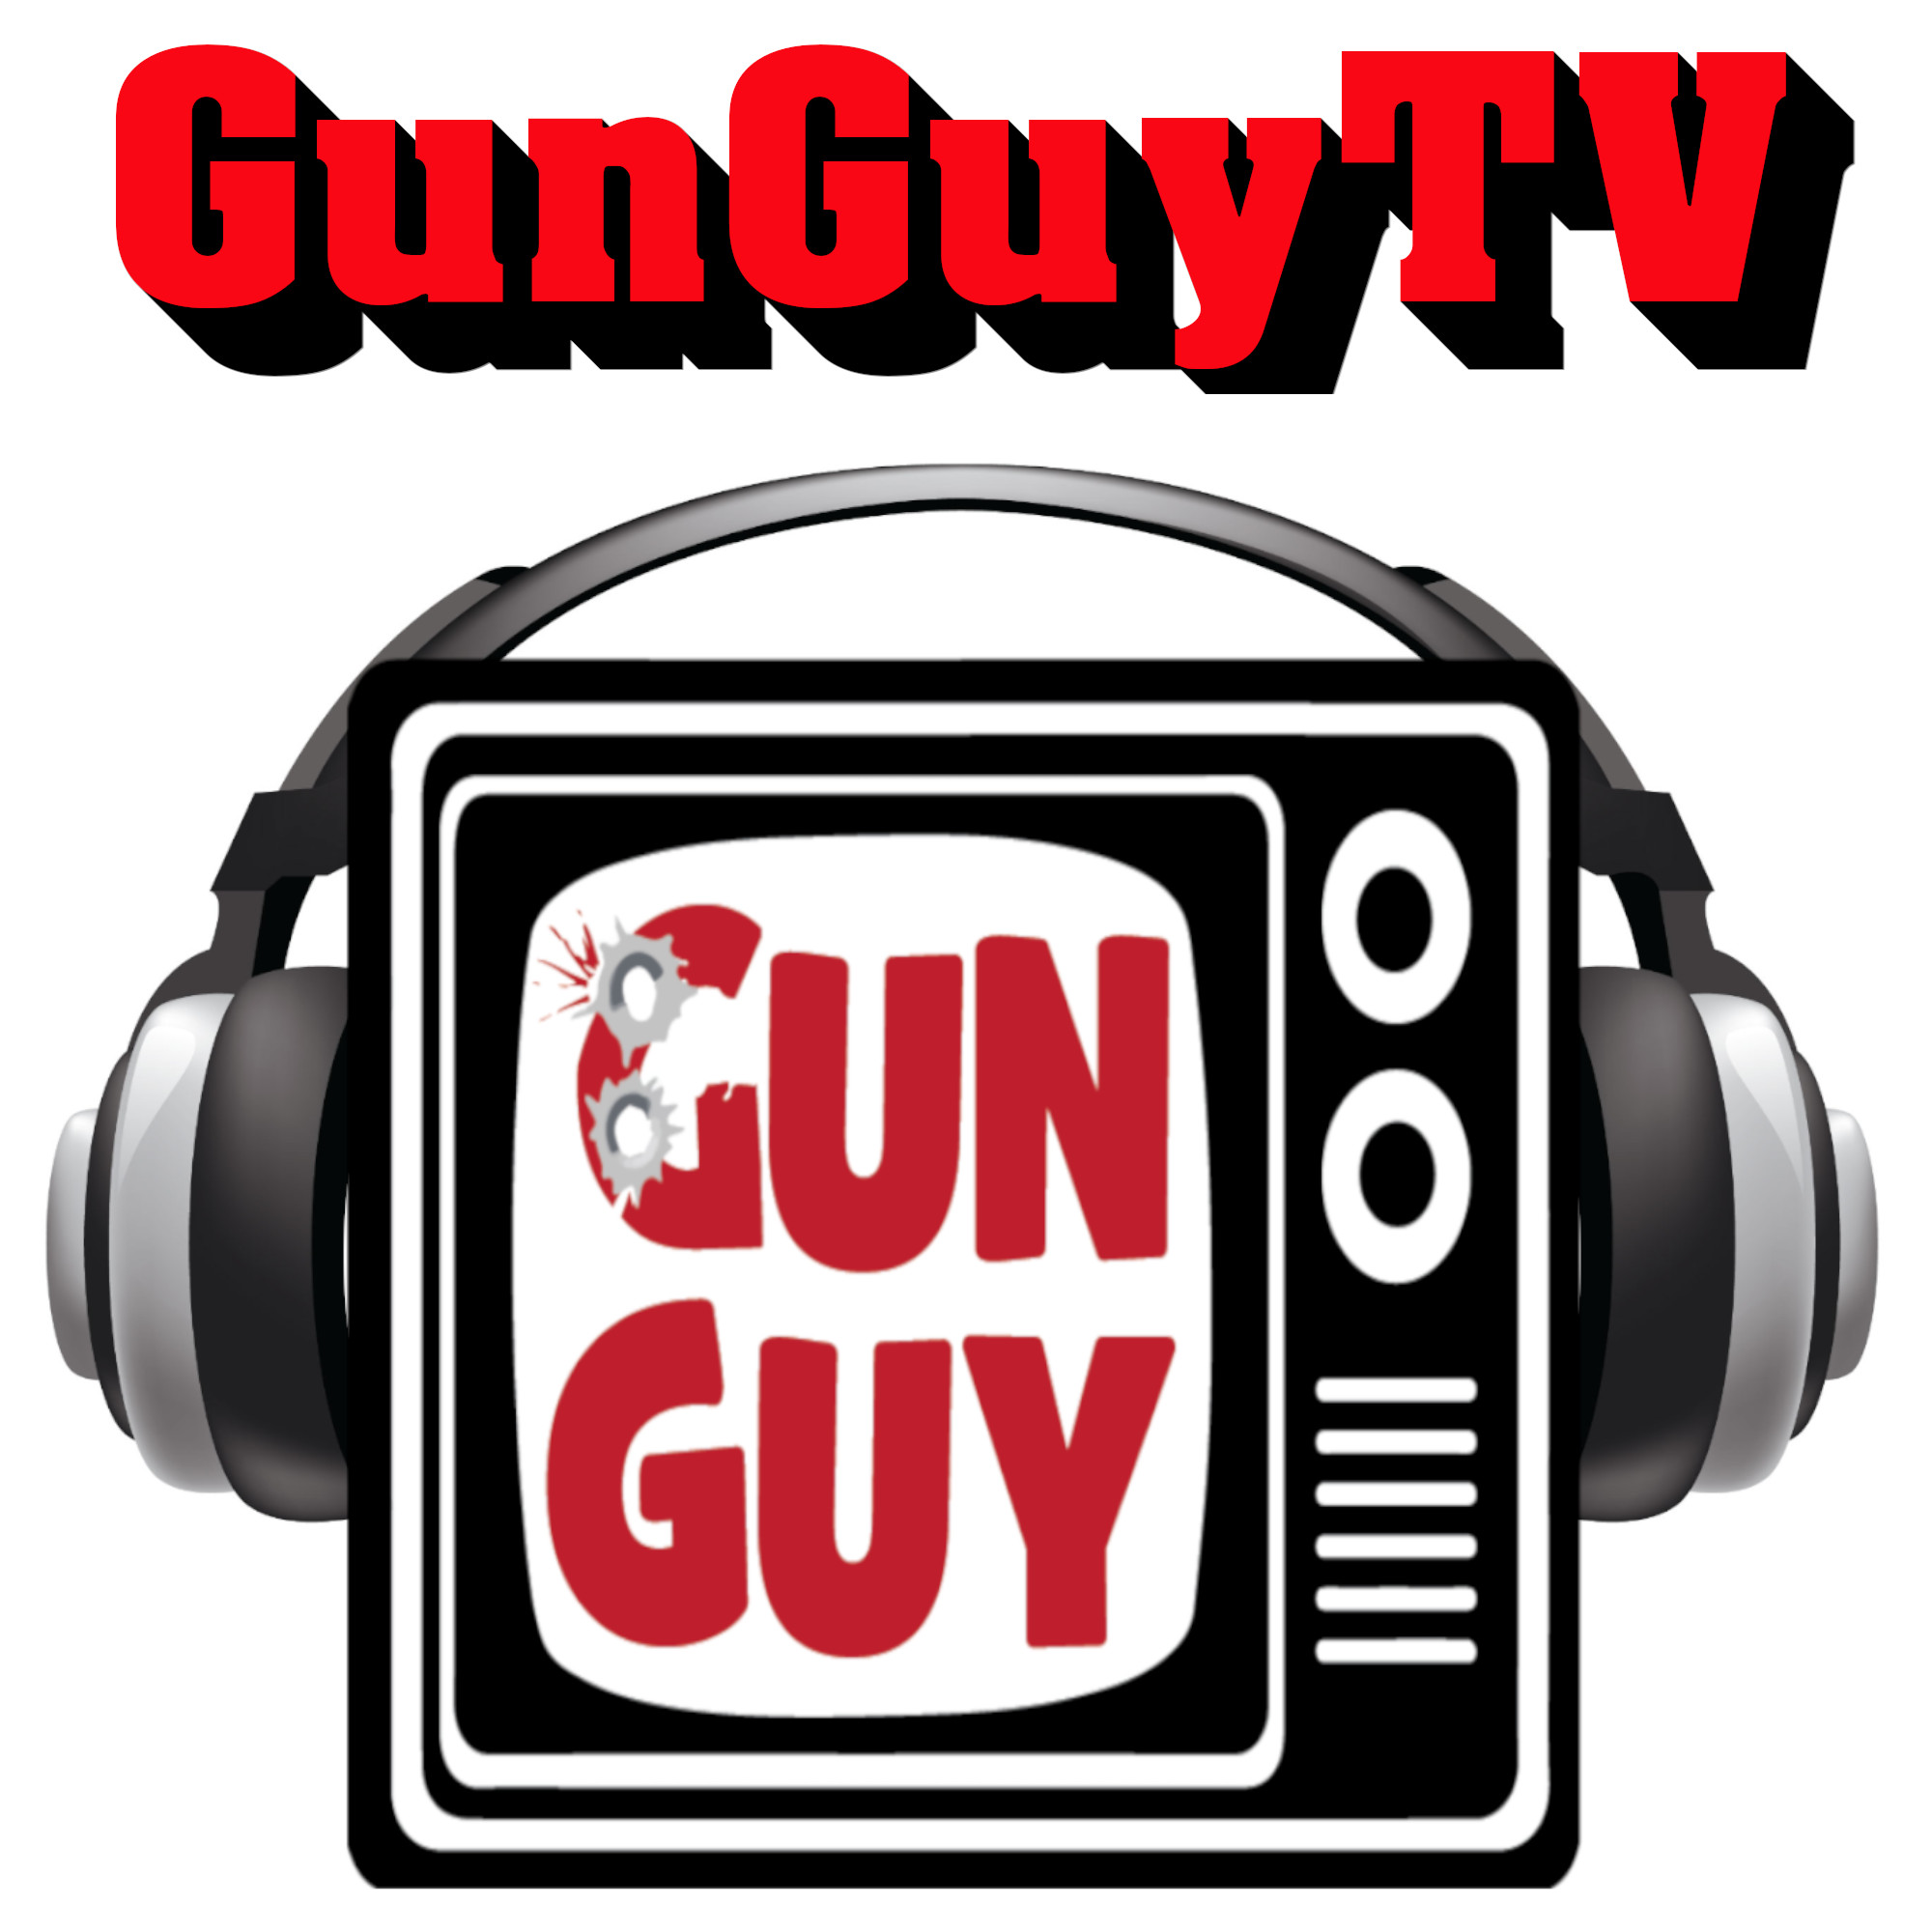 GunGuyTV: A Firearms & Pro Second Amendment Podcast